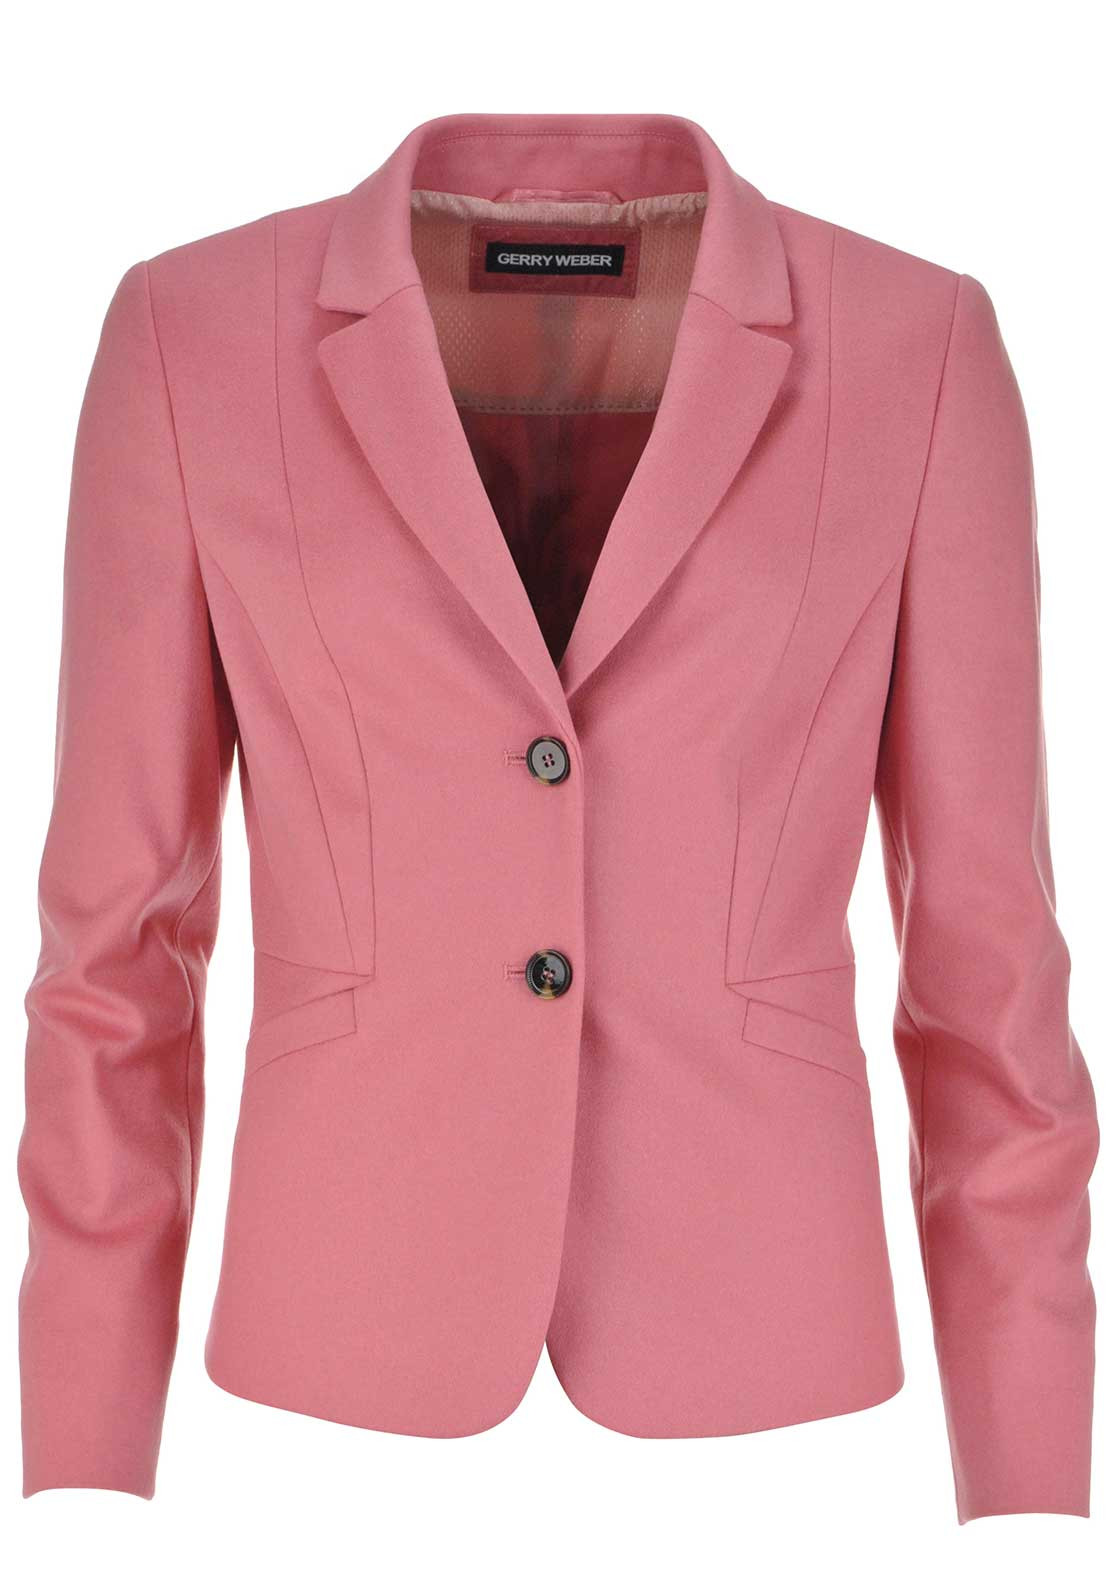 Gerry Weber Wool and Cashmere Blazer Jacket, Salmon Pink